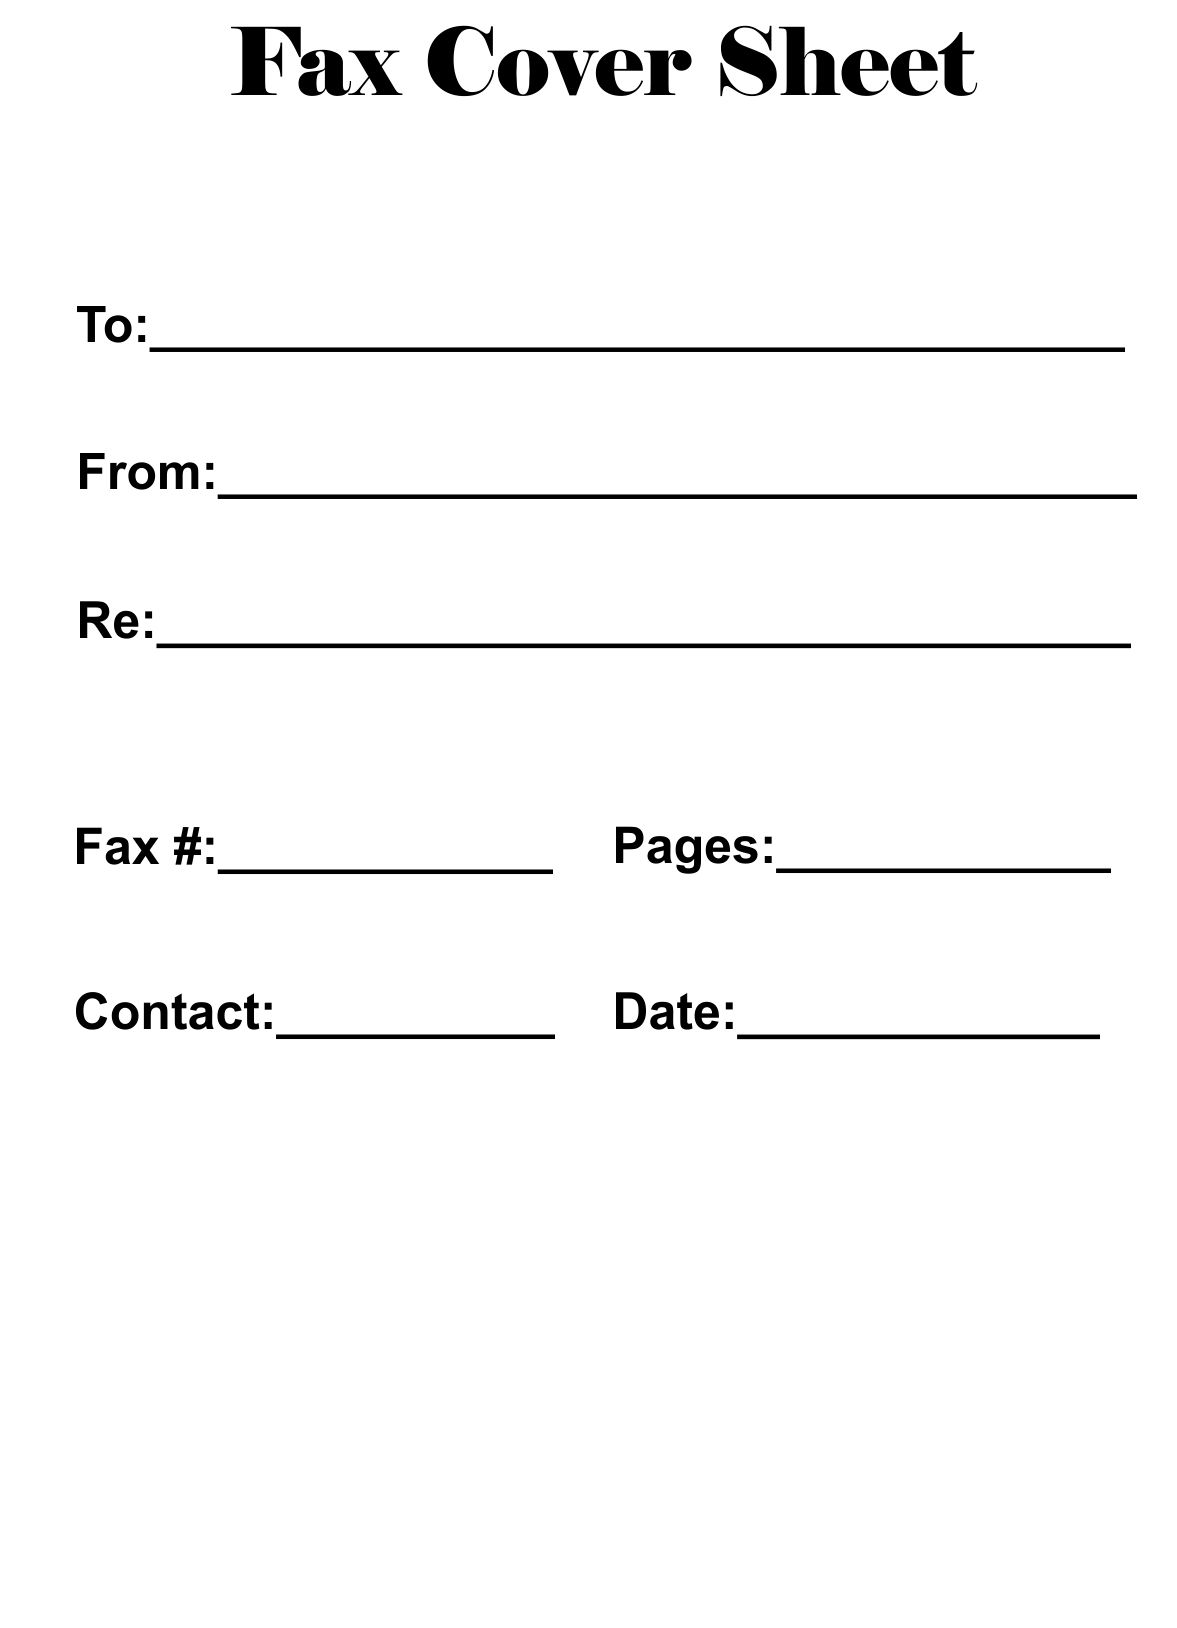 Free Printable Fax Cover Sheet Fax Cover Sheet Cover Sheet Template Cover